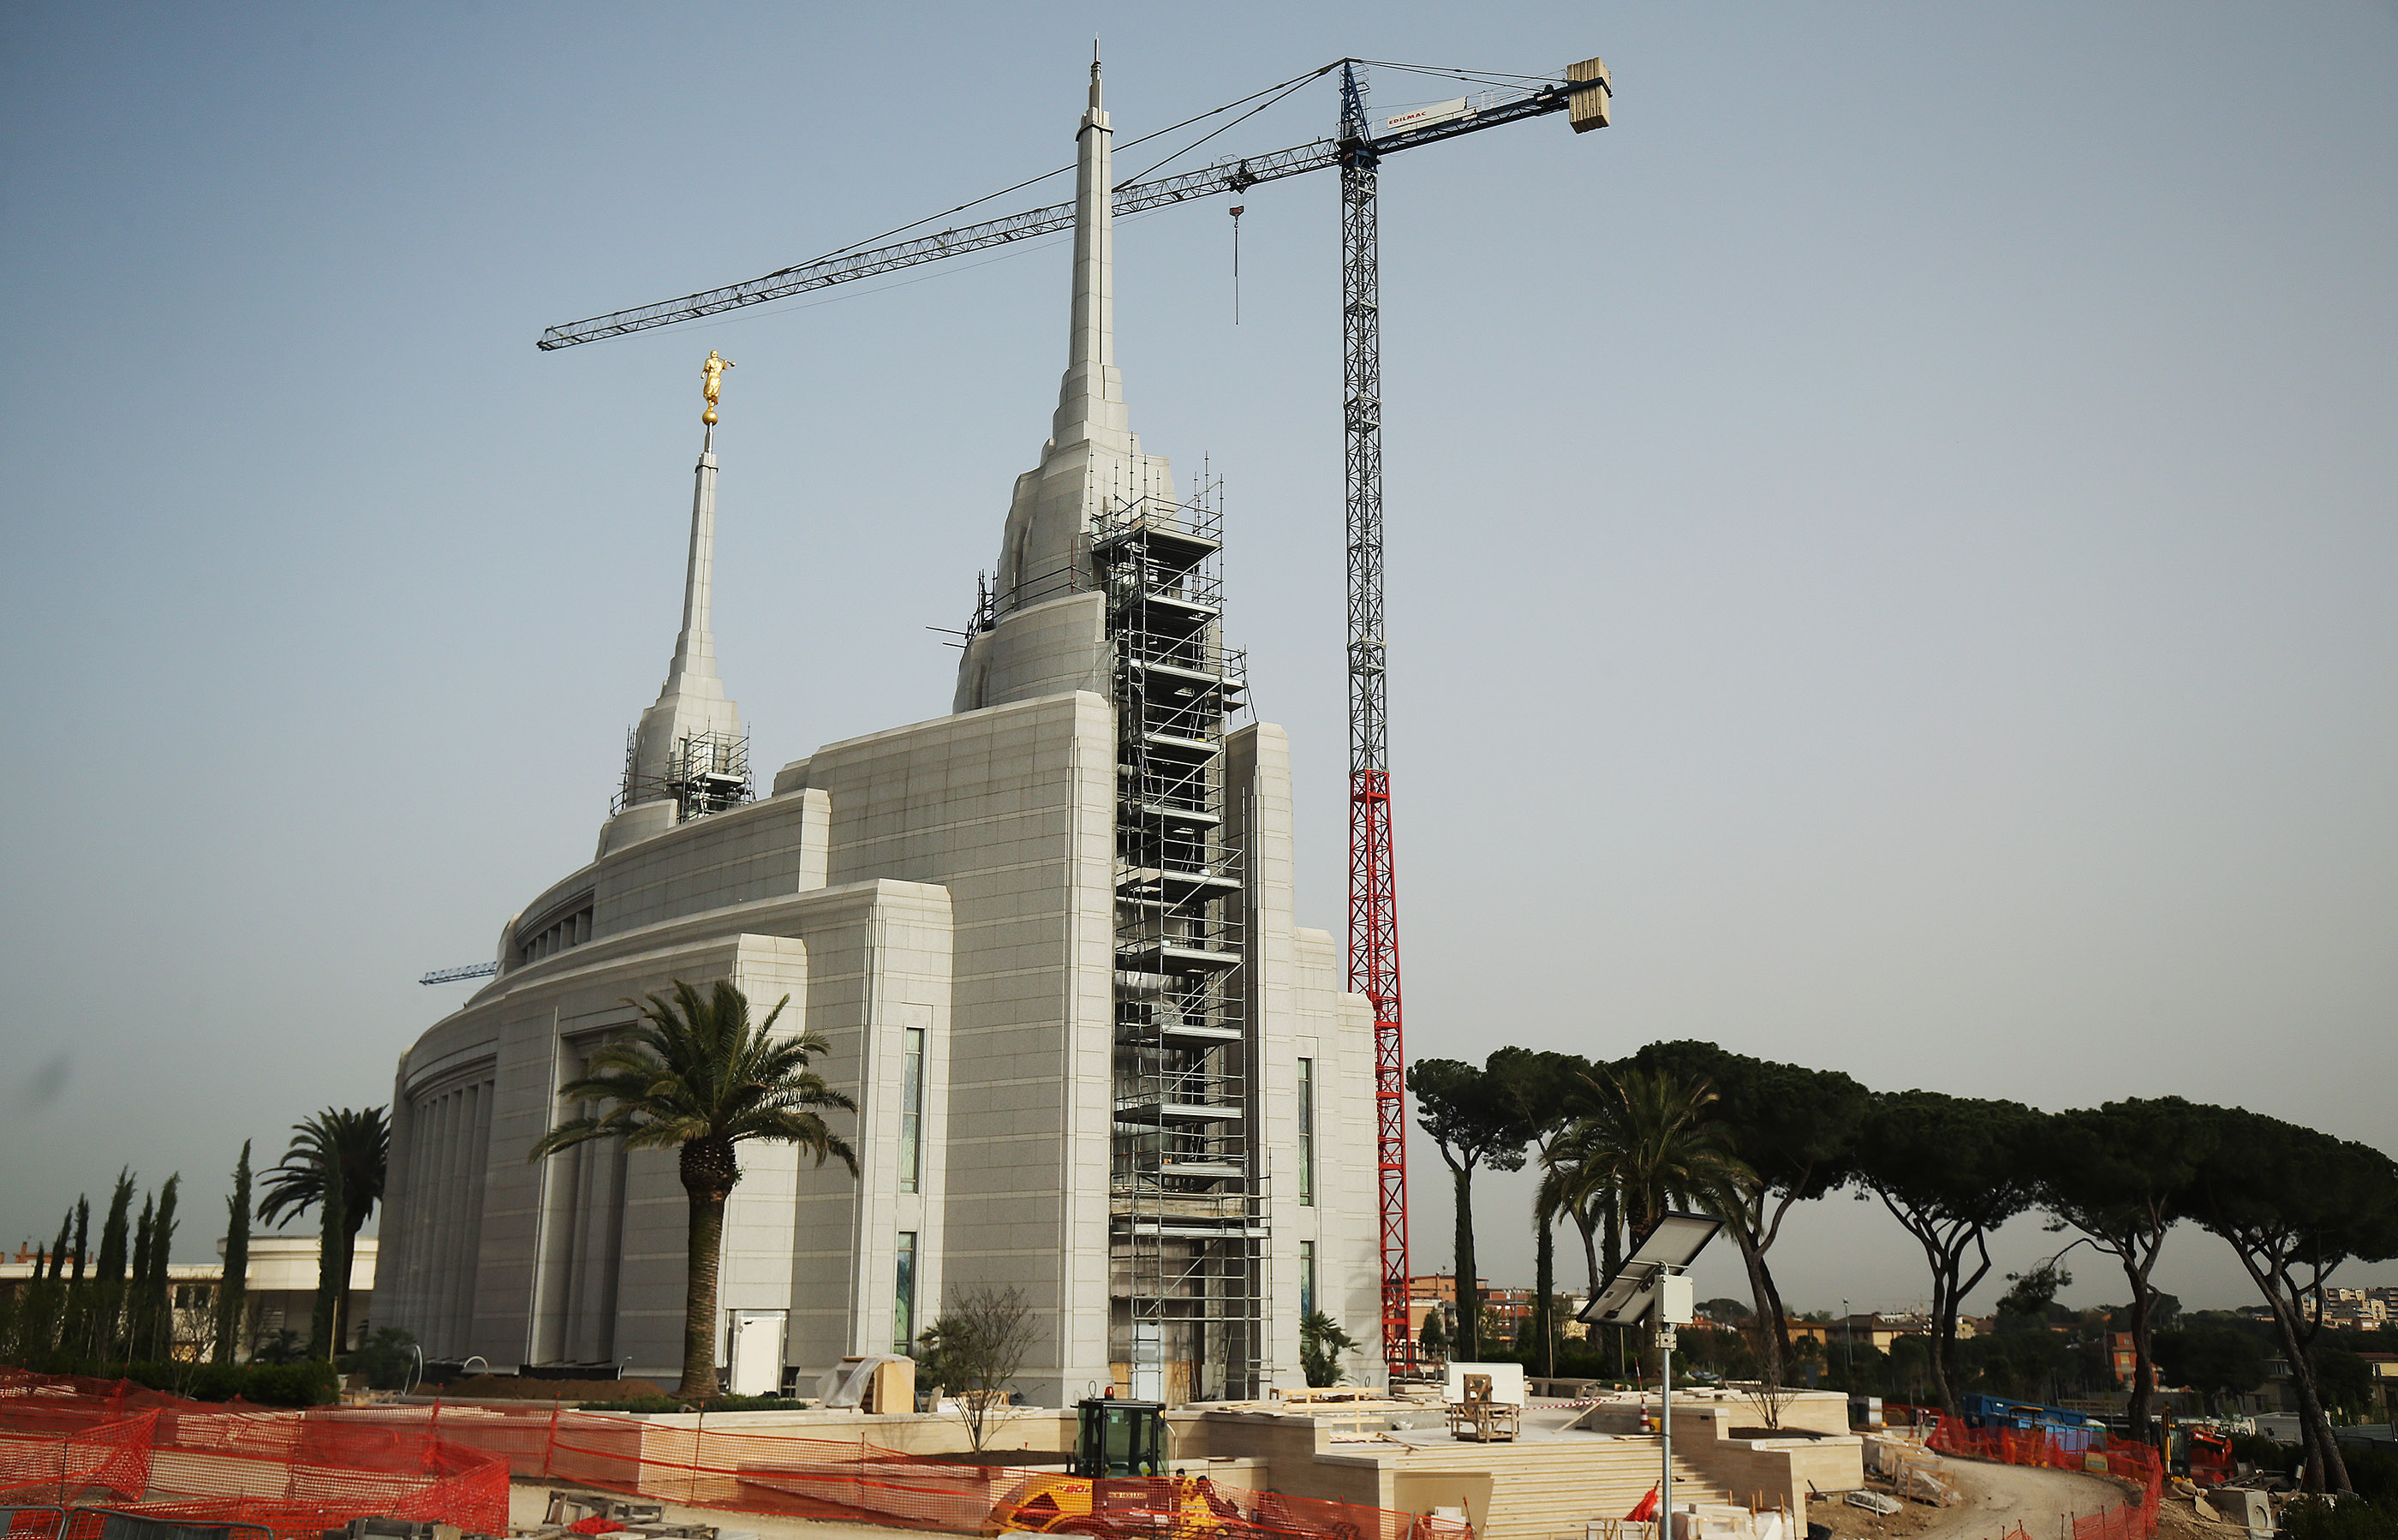 The Rome Italy LDS Temple nears completion in Rome, Italy on April 15, 2018.